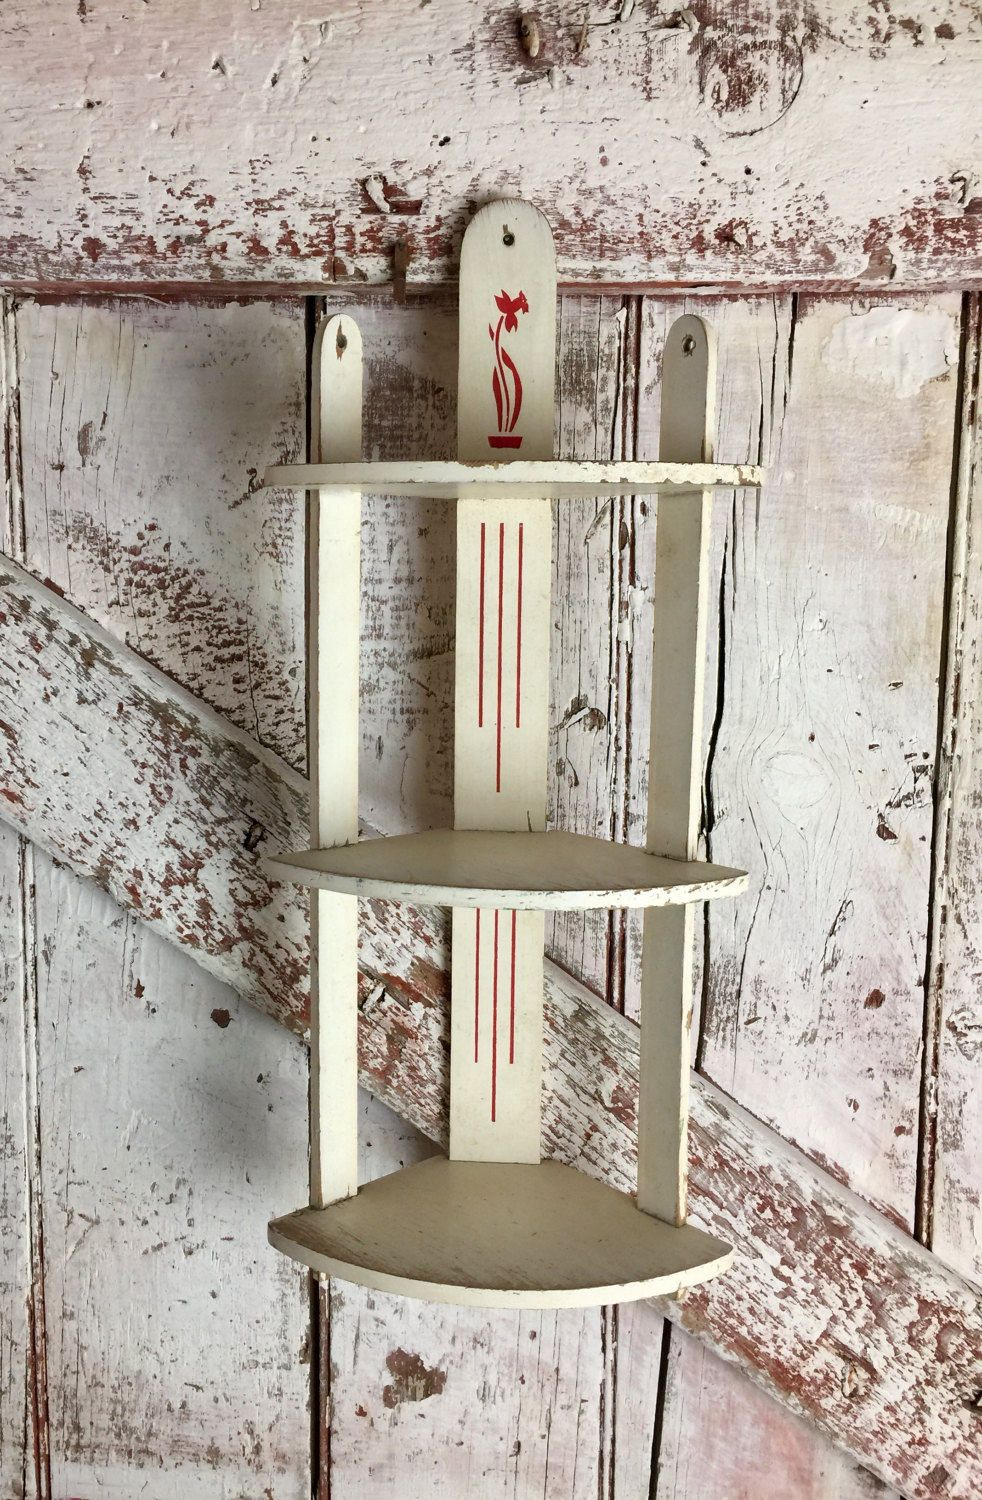 Vintage Kitchen Corner Wall Shelf White And Red Daffodil Knick Knack 3 Tier Wooden Wall Hanging By Corner Wall Shelves Wooden Wall Hangings Wooden Corner Shelf